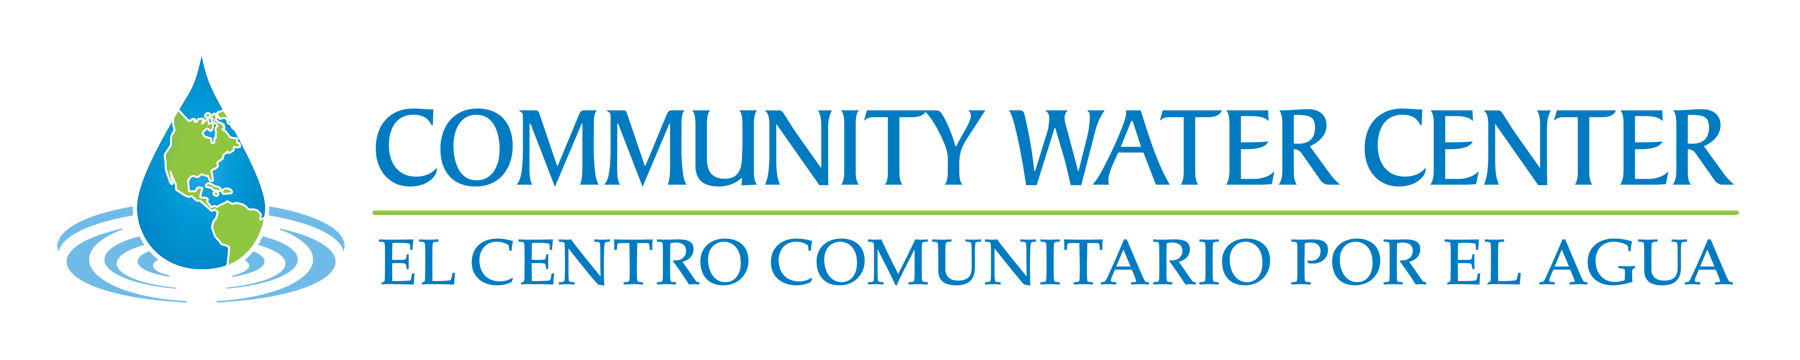 Community_Water_Center Logo.png